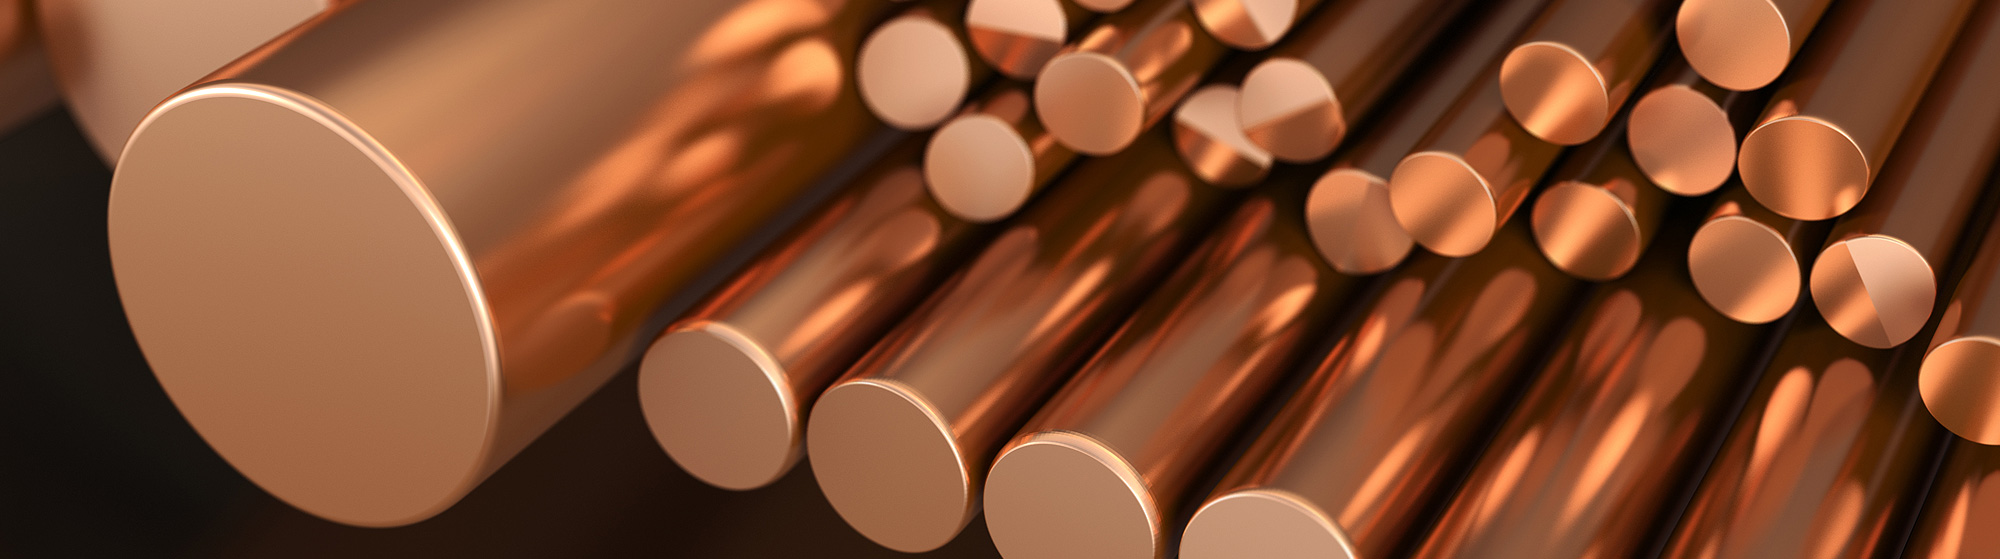 Copper Wave Analysis – 10 September, 2019